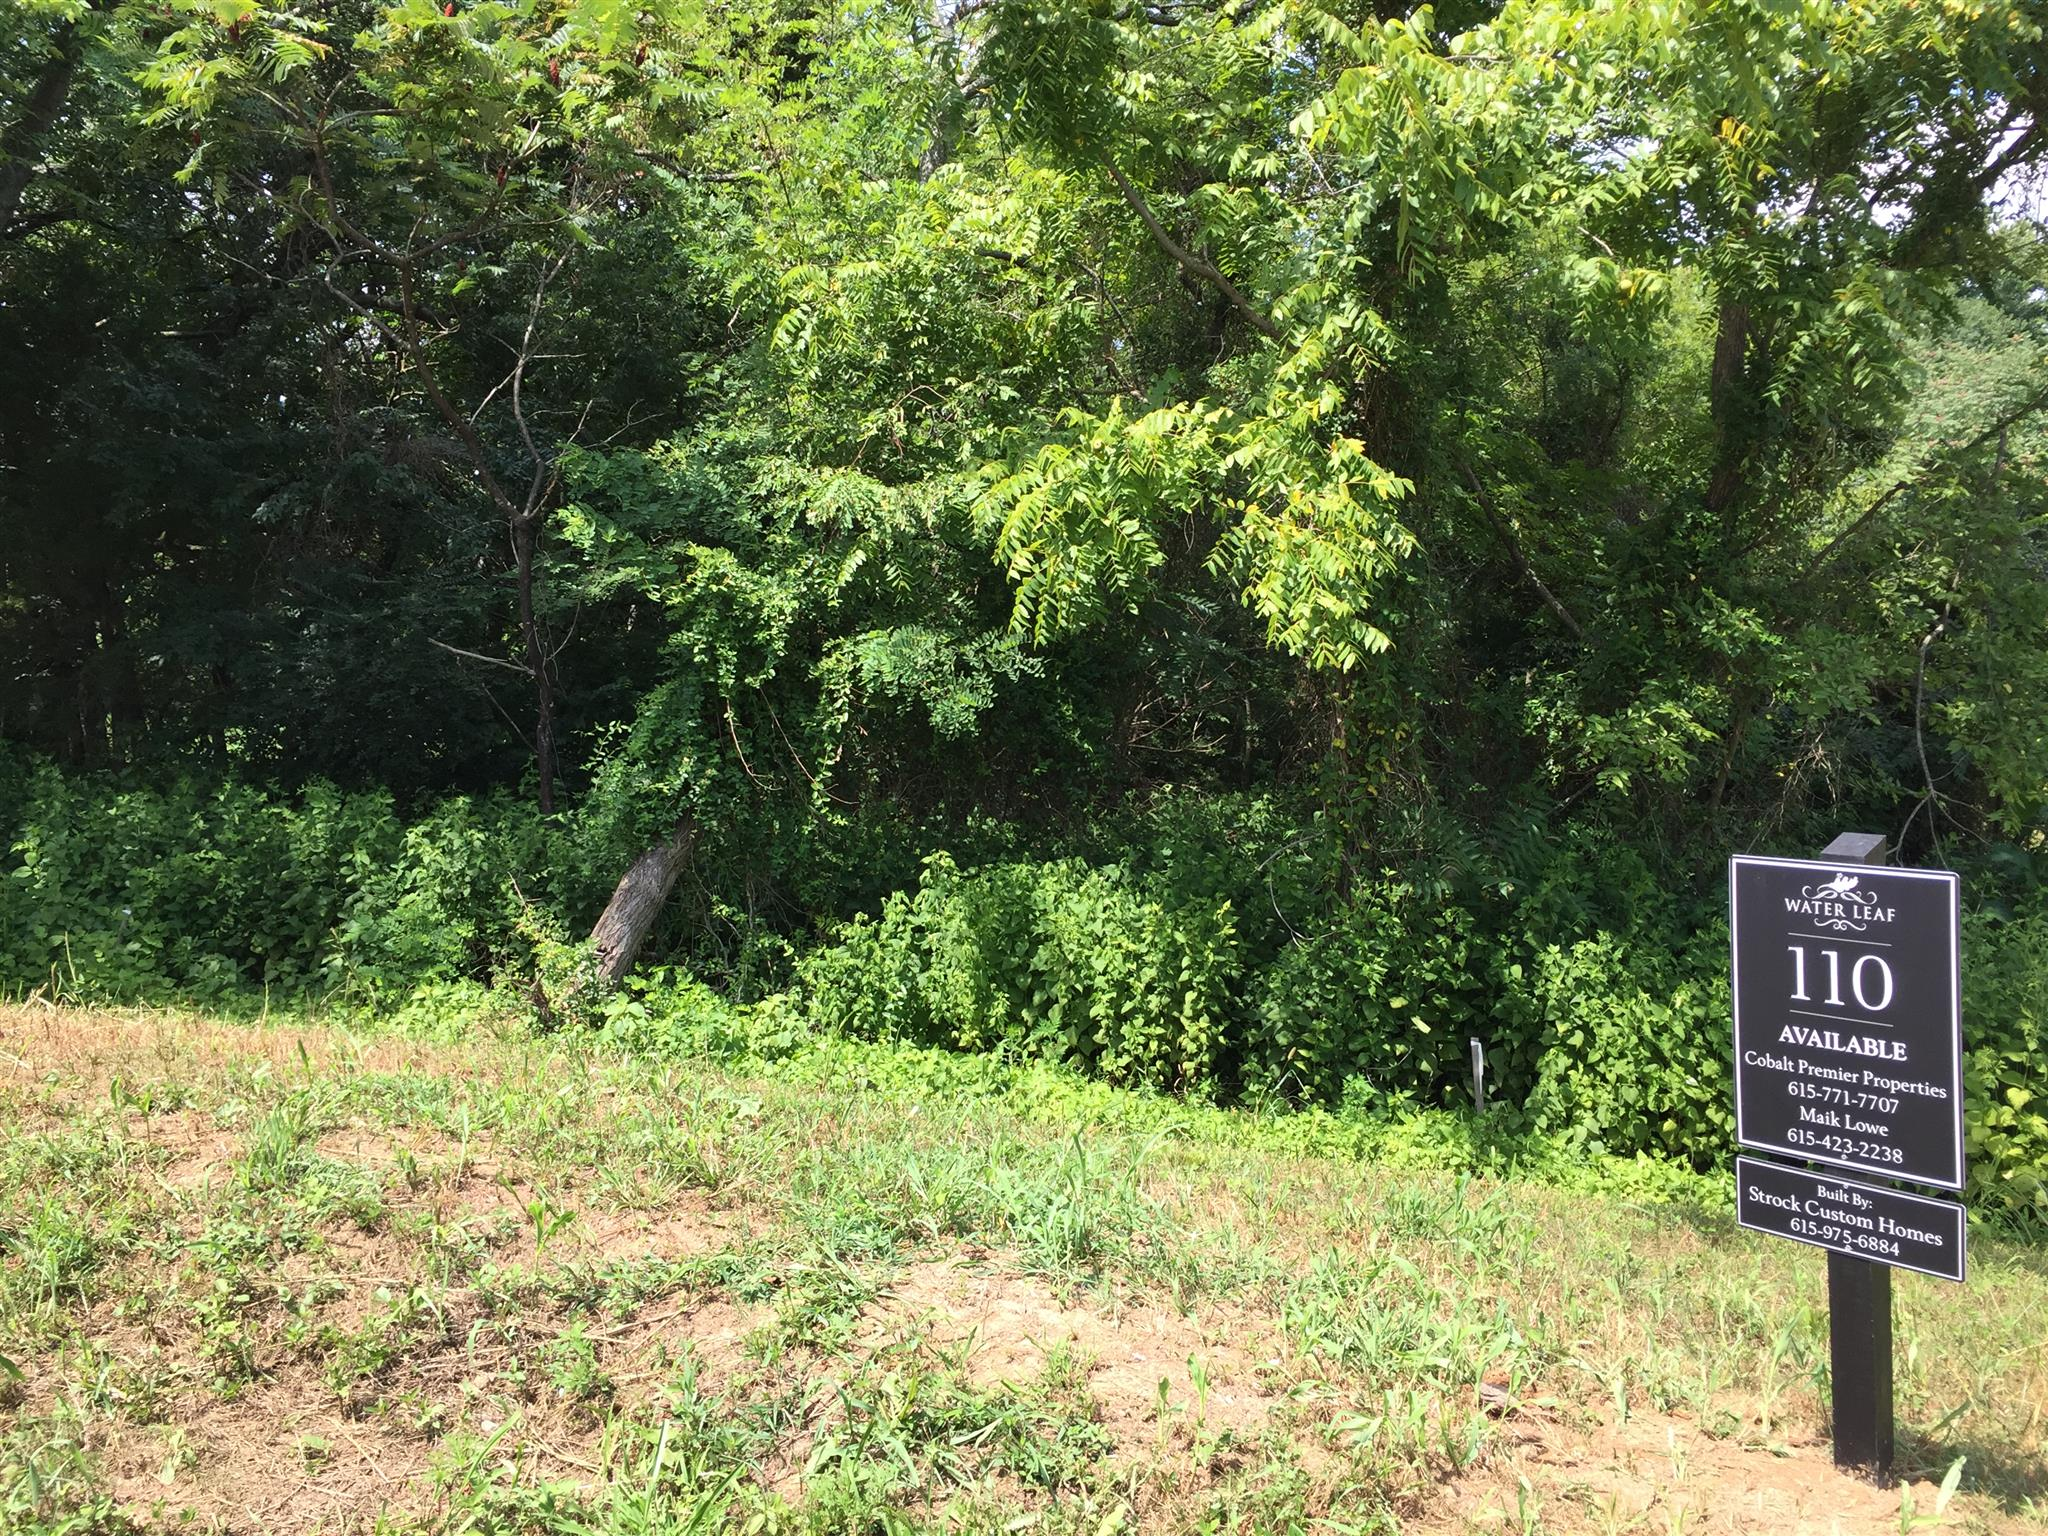 5042 Water Leaf Dr (lot 110), Franklin, TN 37064 - Franklin, TN real estate listing